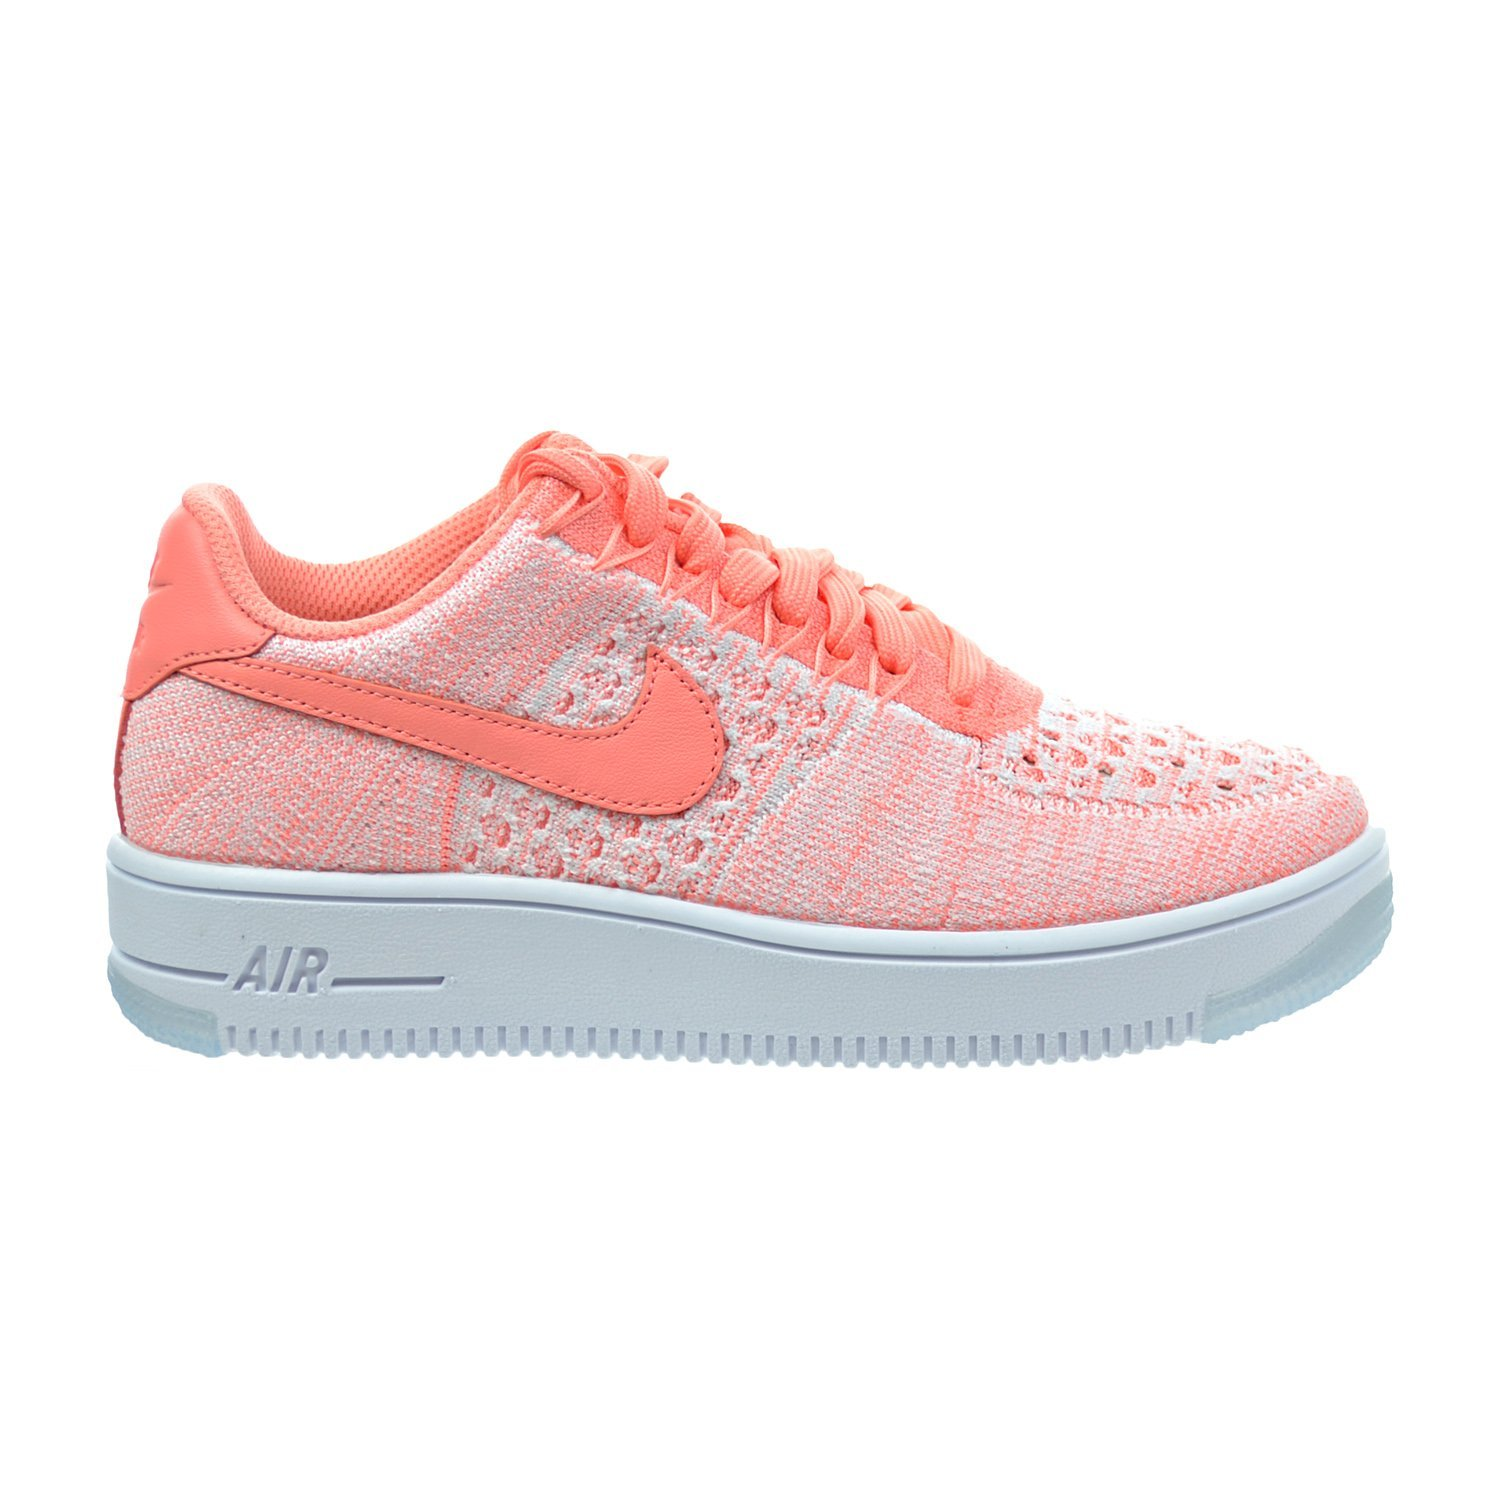 4a87e5460a26 ... coupon amazon nike air force 1 flyknit low womens shoes atomic pink  820256 600 fashion sneakers